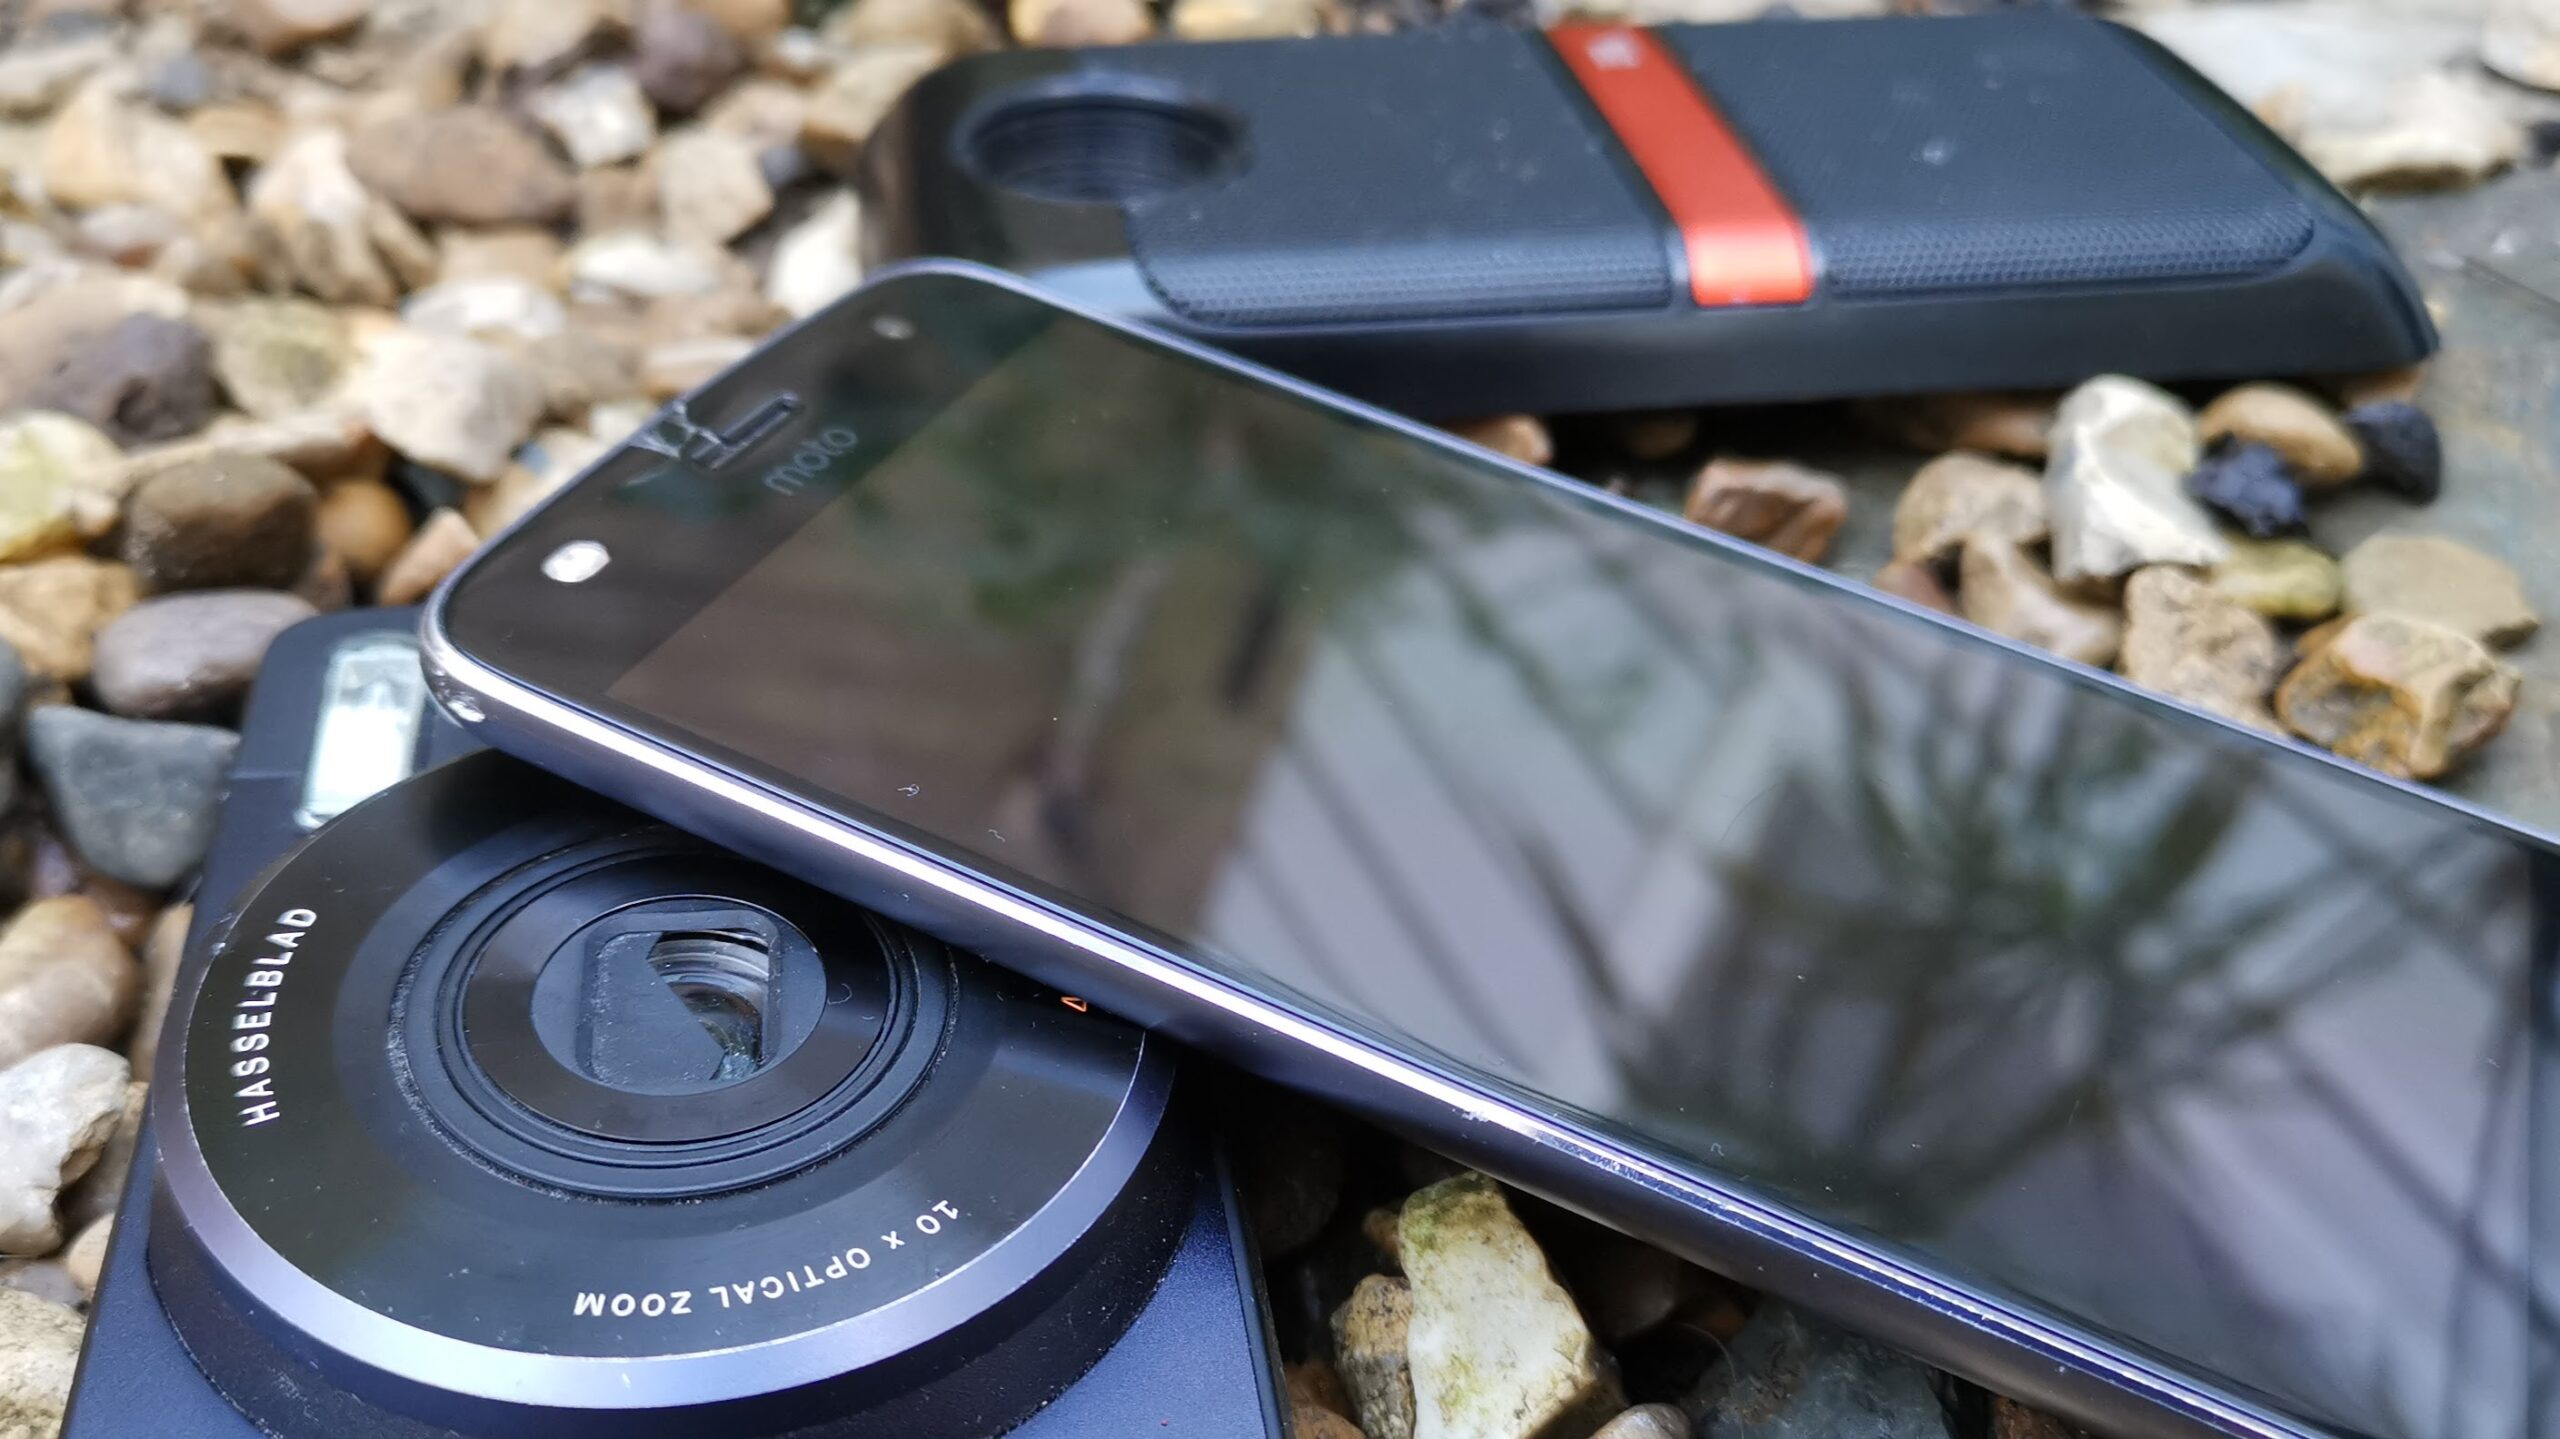 Moto Z2 Play with Hasselblad camera and JBL speaker Moto Mods